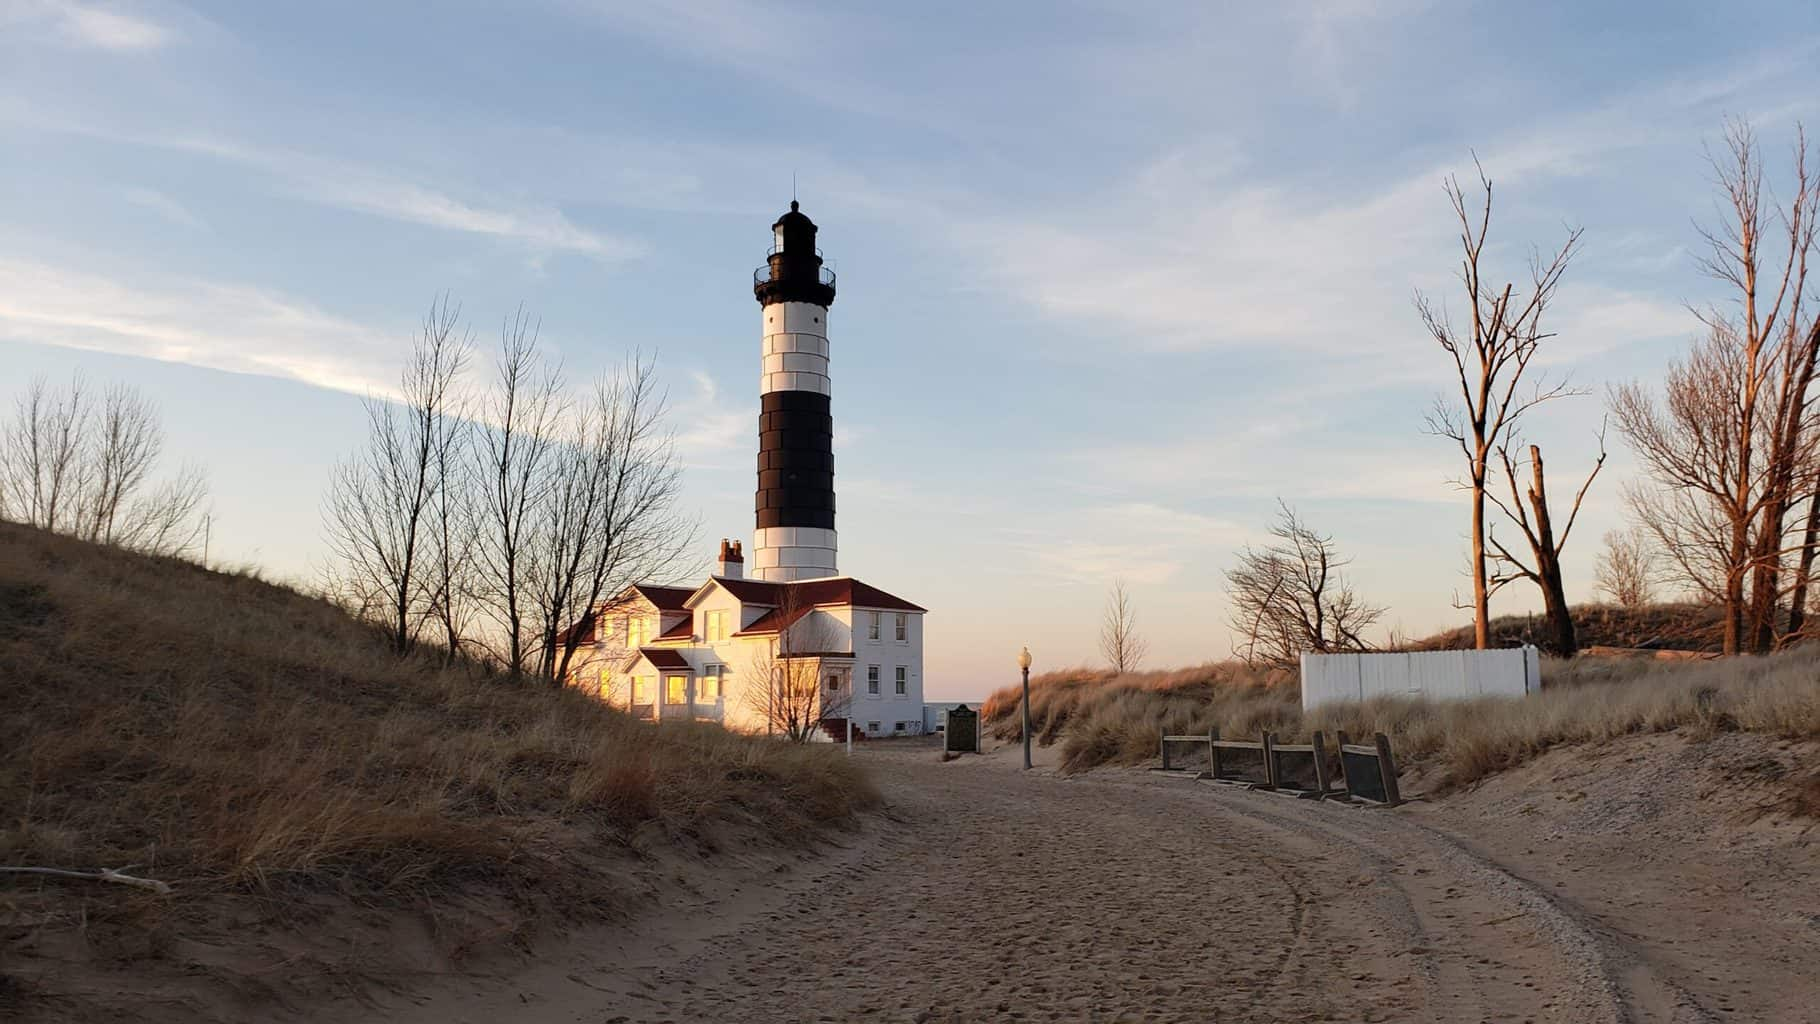 a lighthouse in ludington michigan